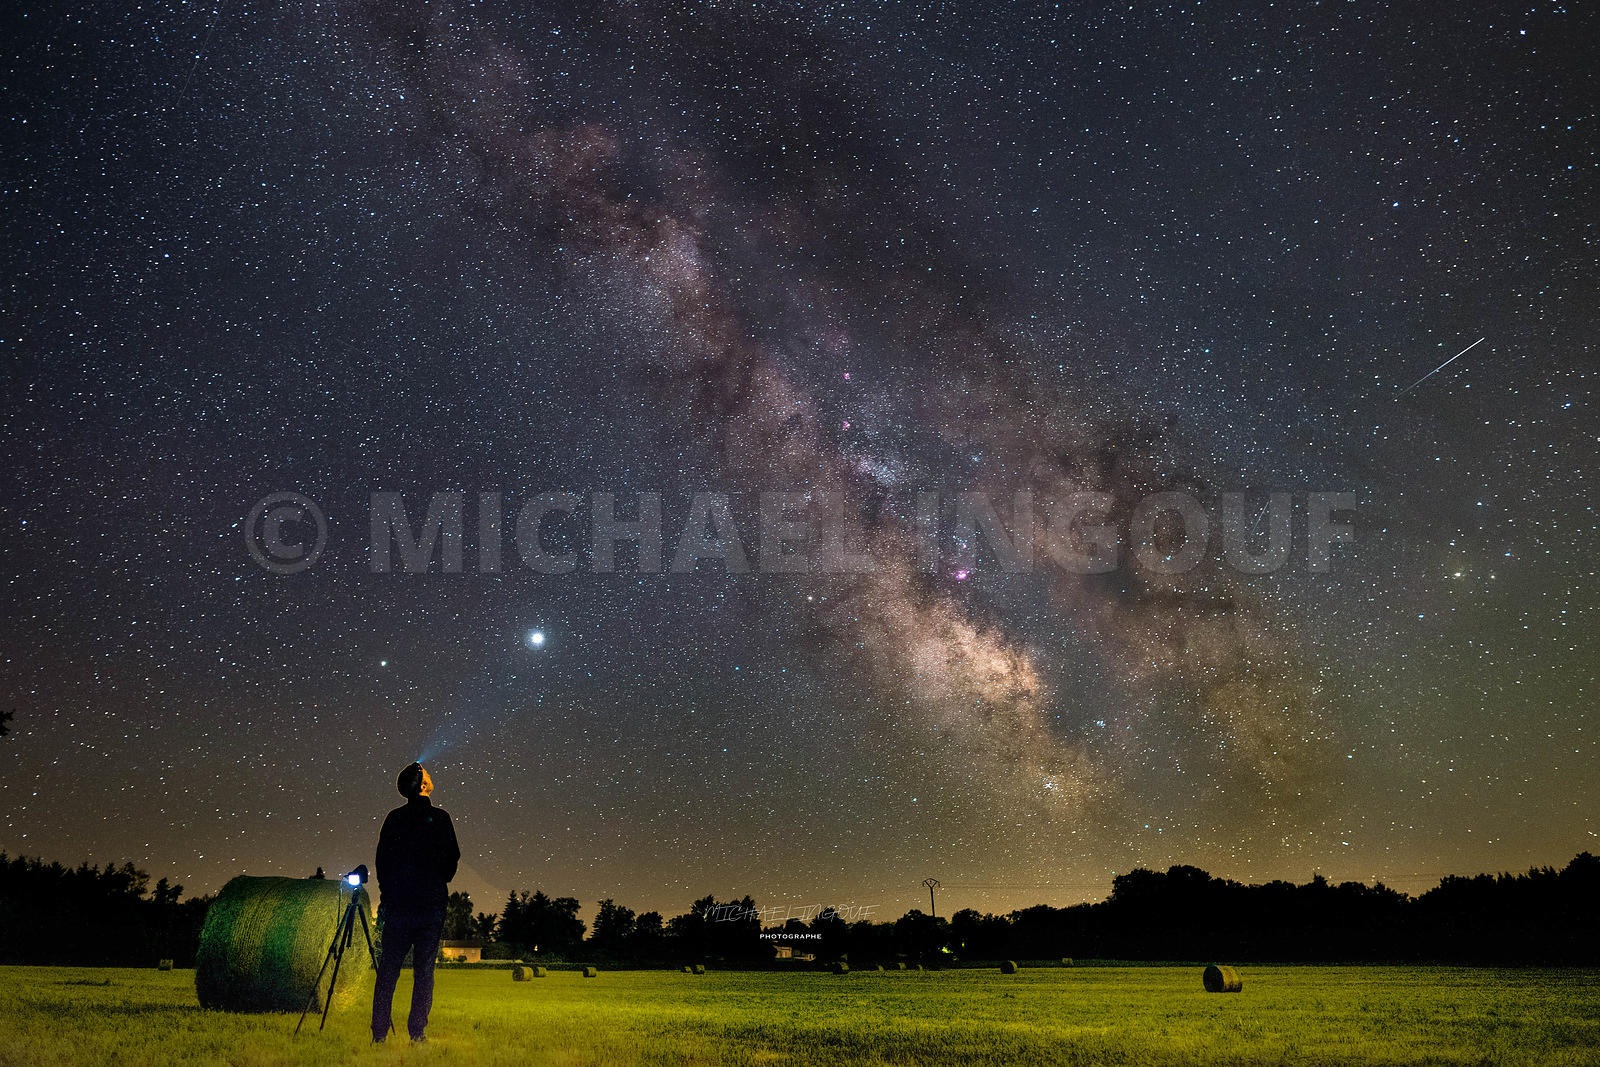 milkyway_2020_saint_just_champs_astroselfie